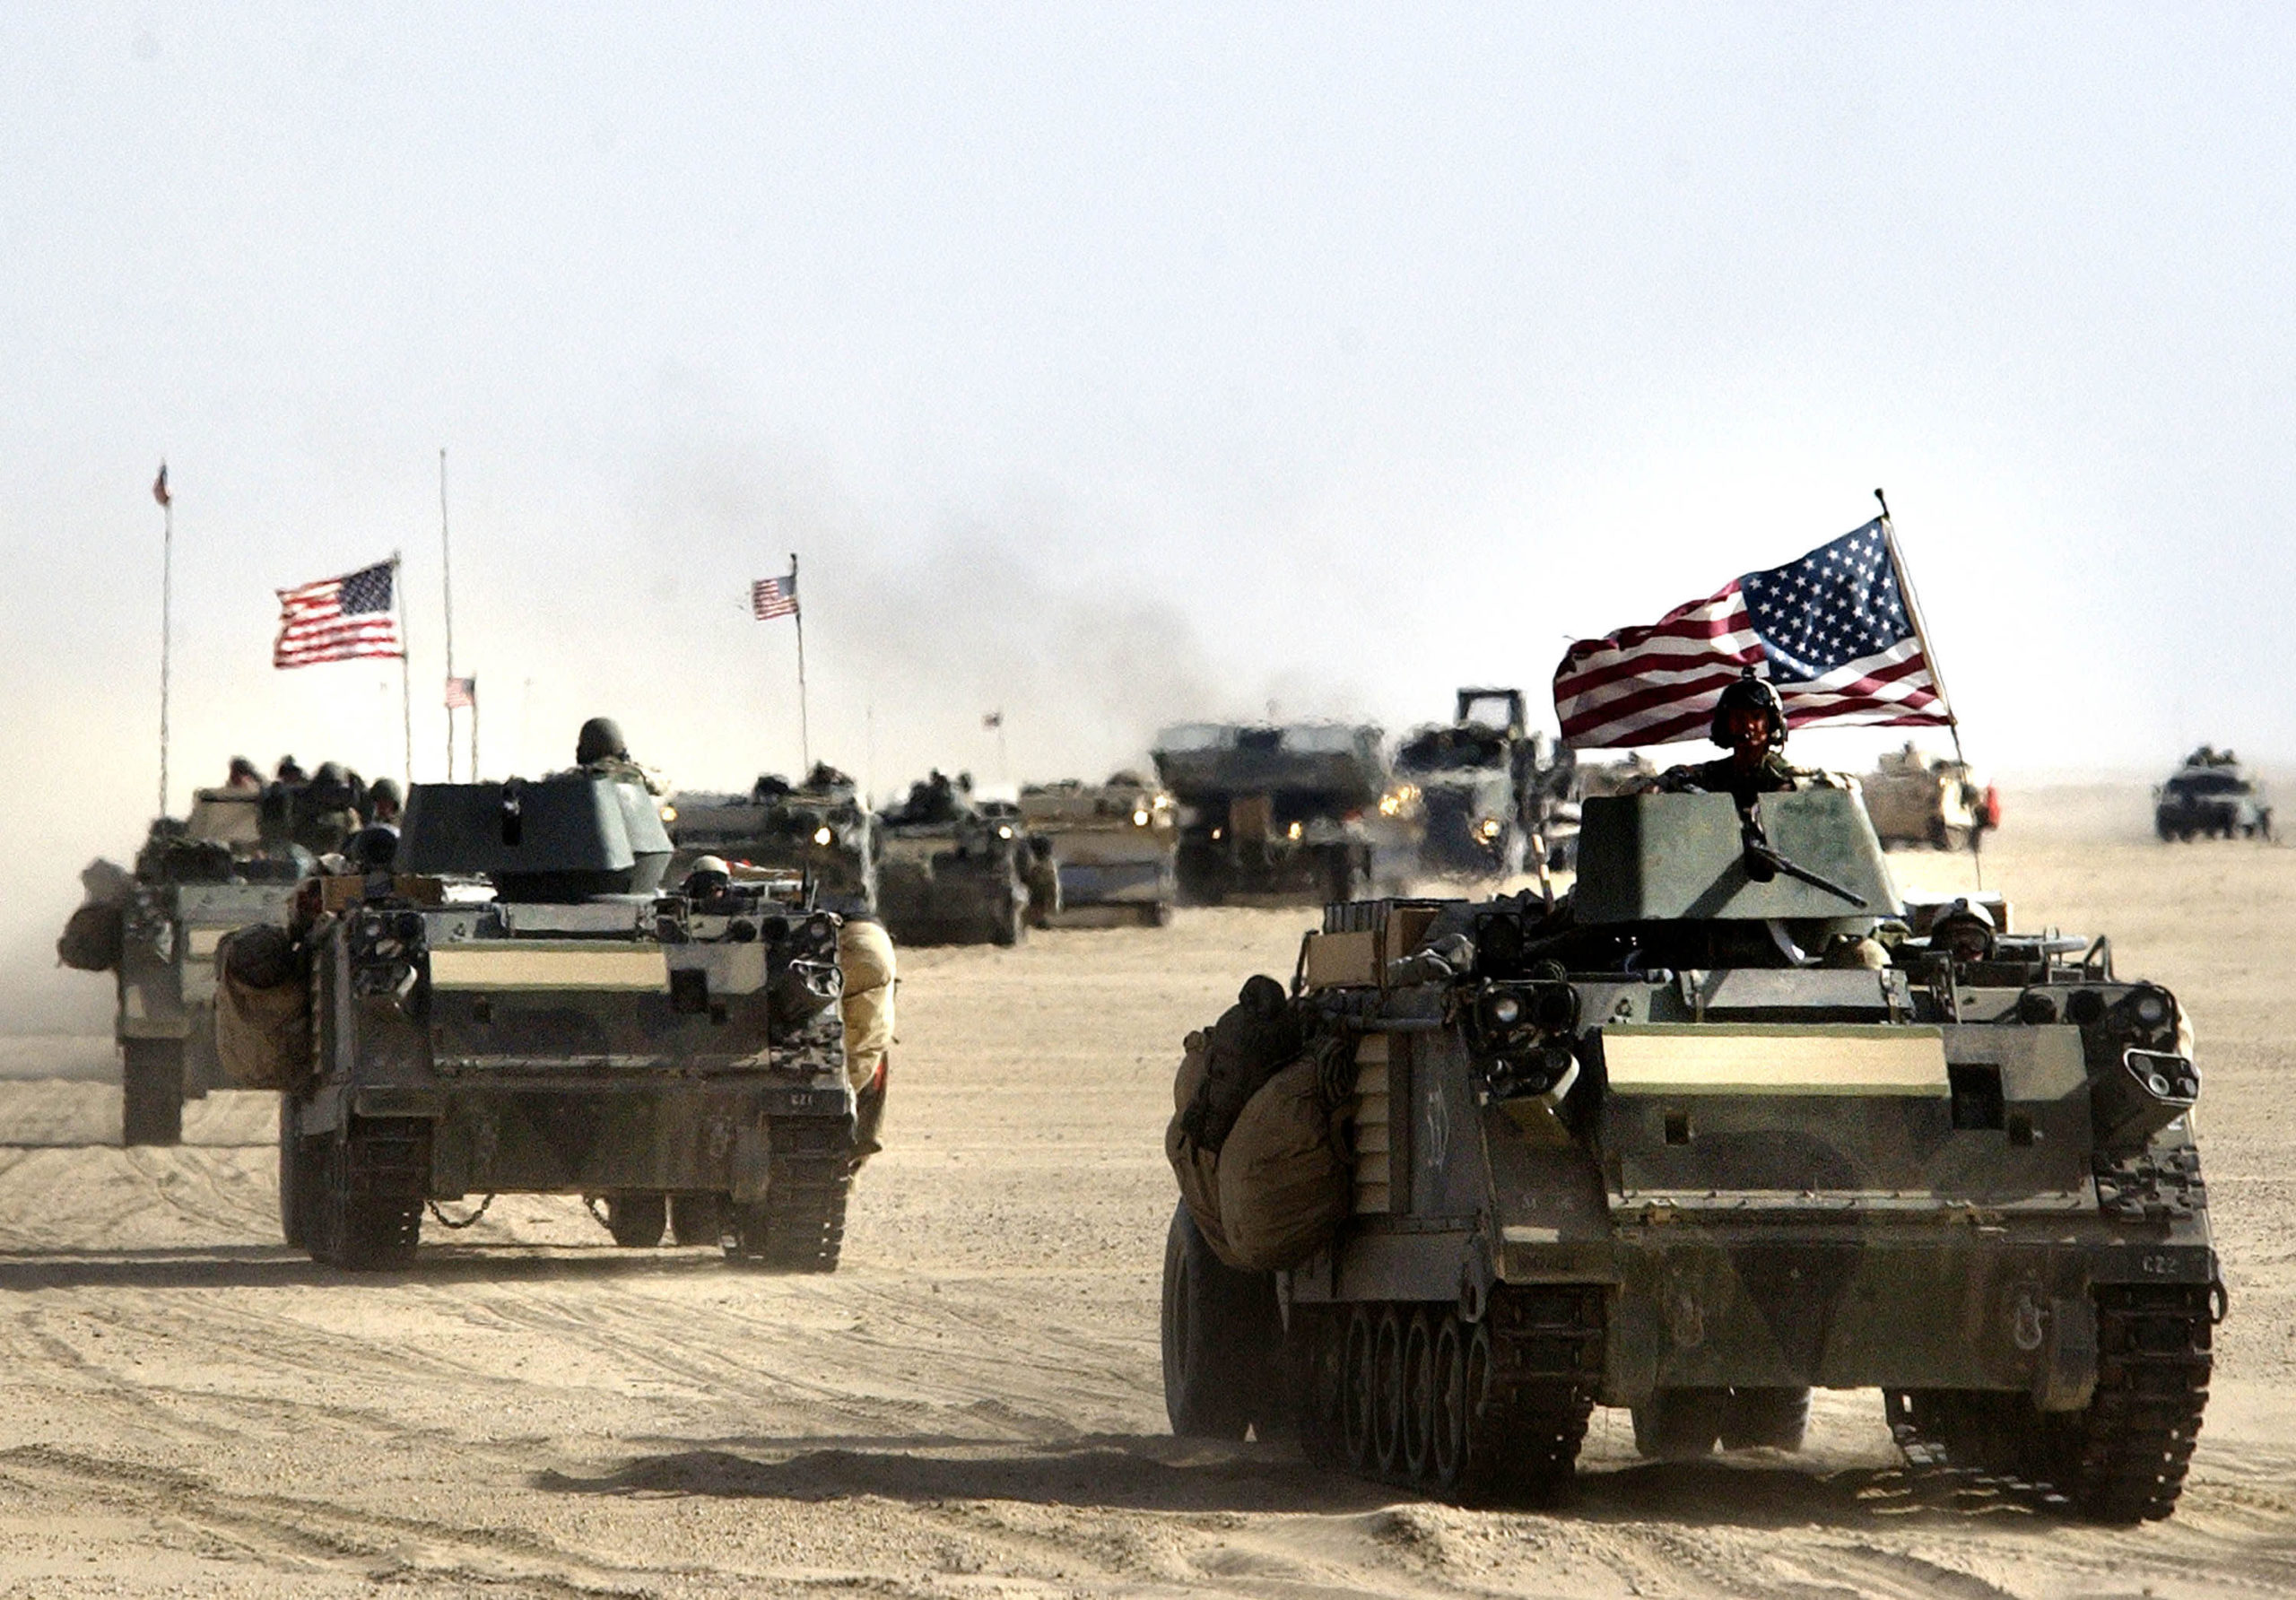 Oil costs surge 4% following assaults on Iraq bases